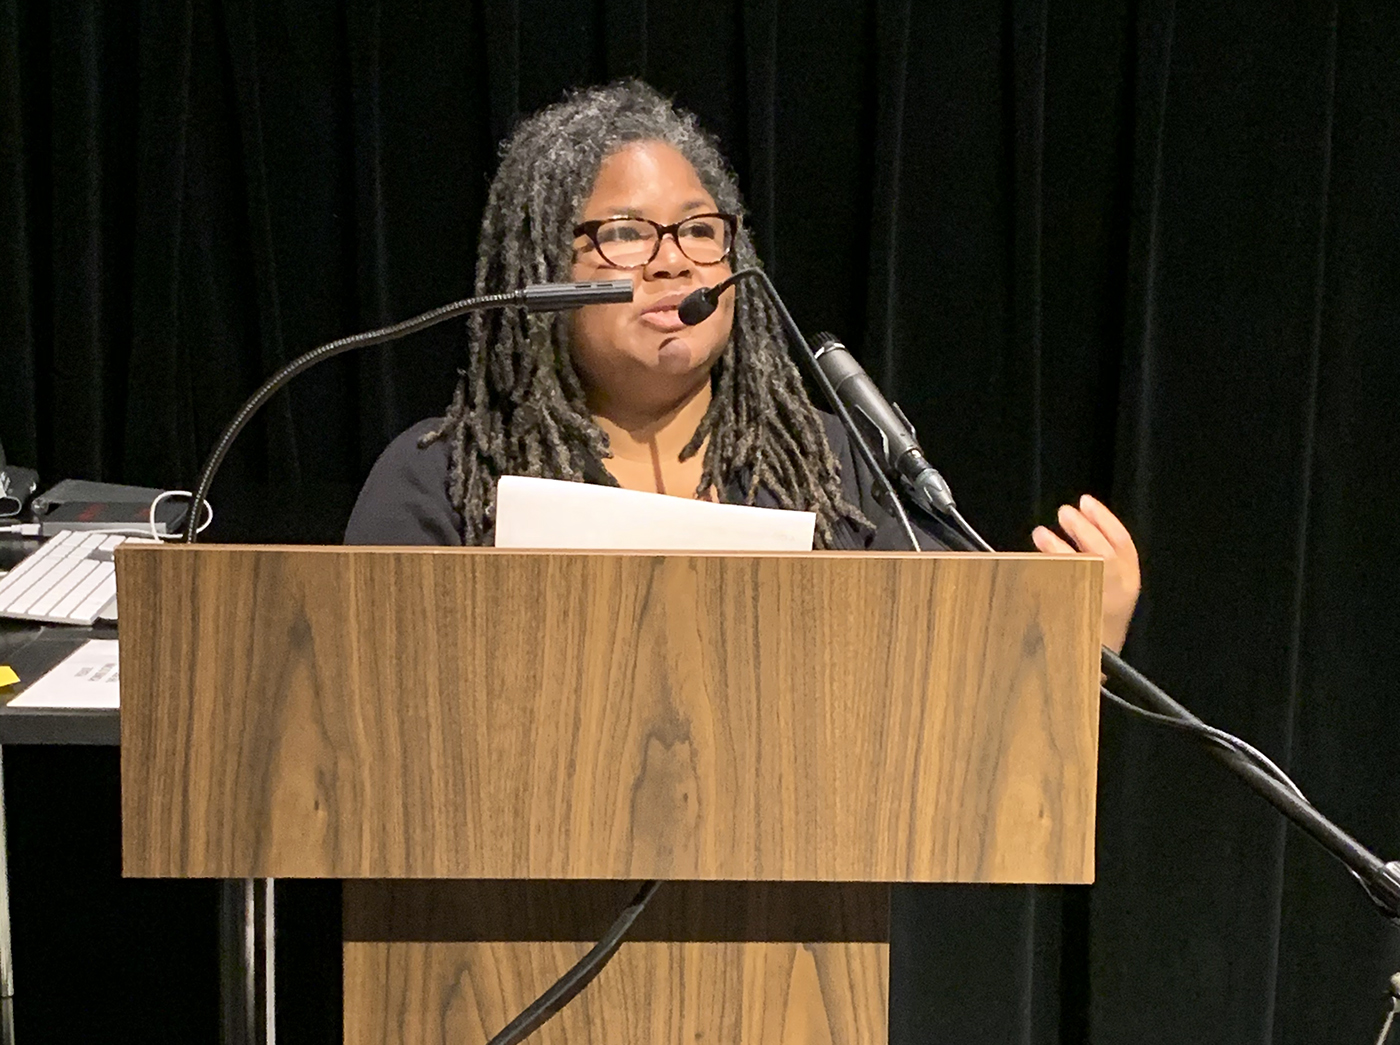 Katherine Cheairs speaking at Pratt (courtesy Office of Diversity, Equity and Inclusion)